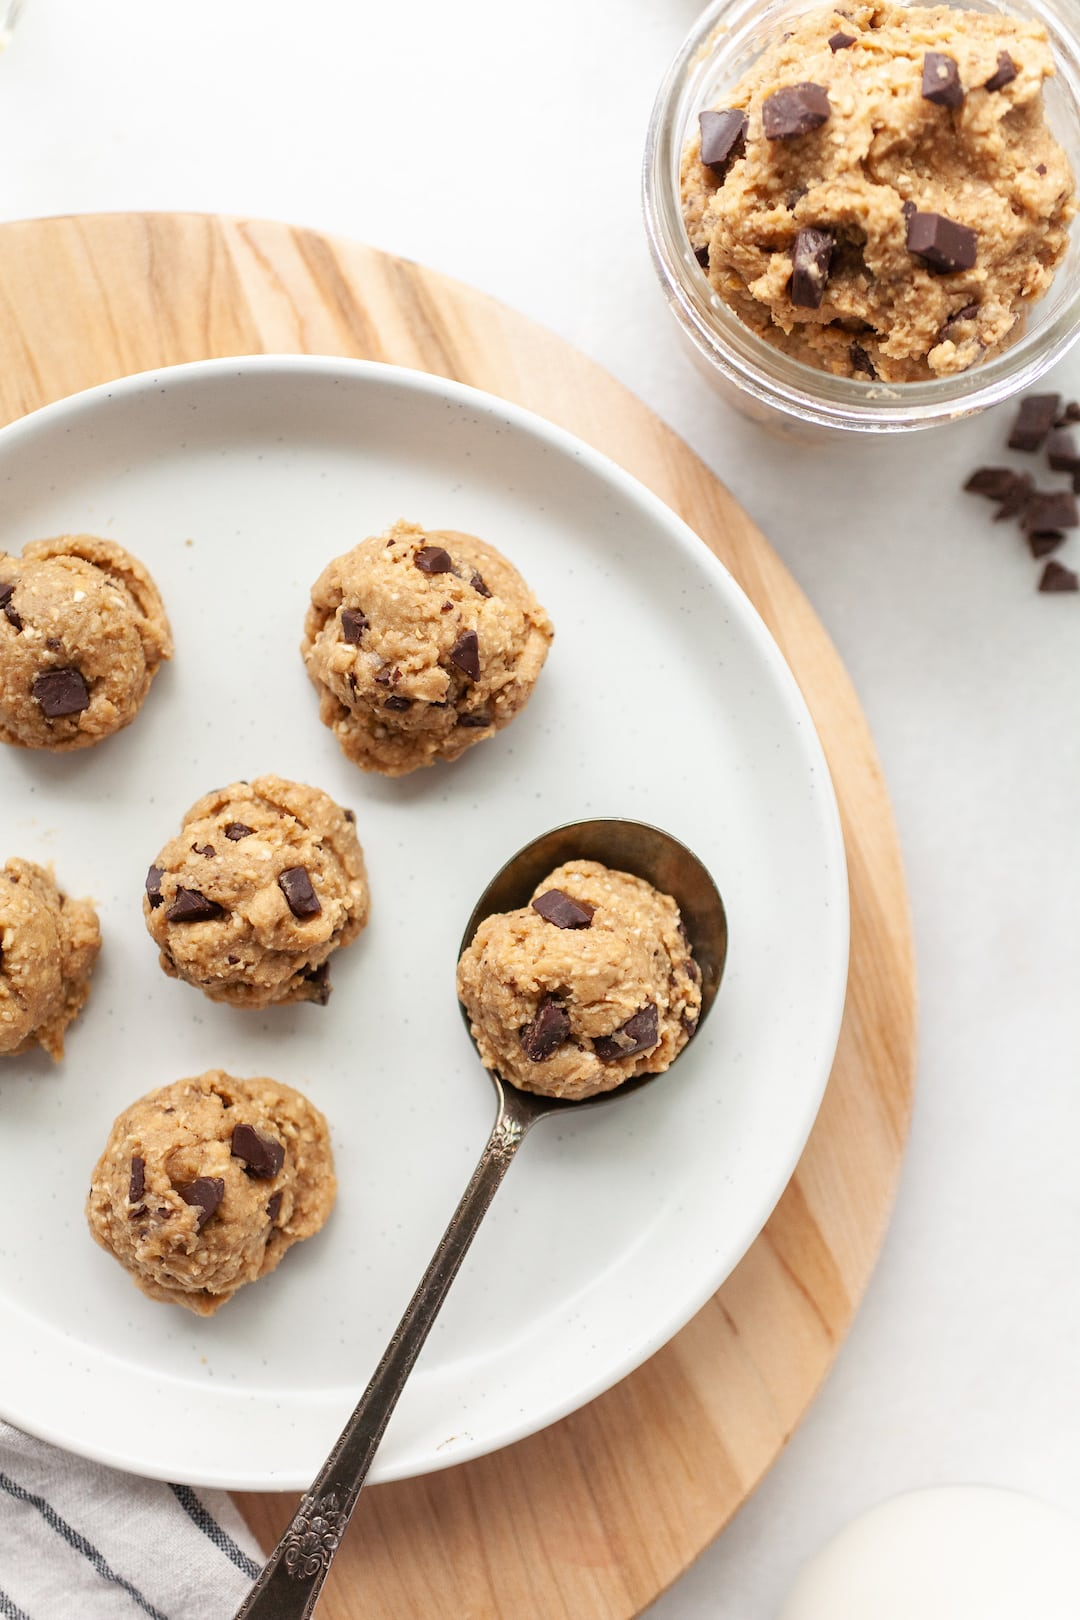 protein cookie dough balls with dark chocolate chunks arranged on a white plate